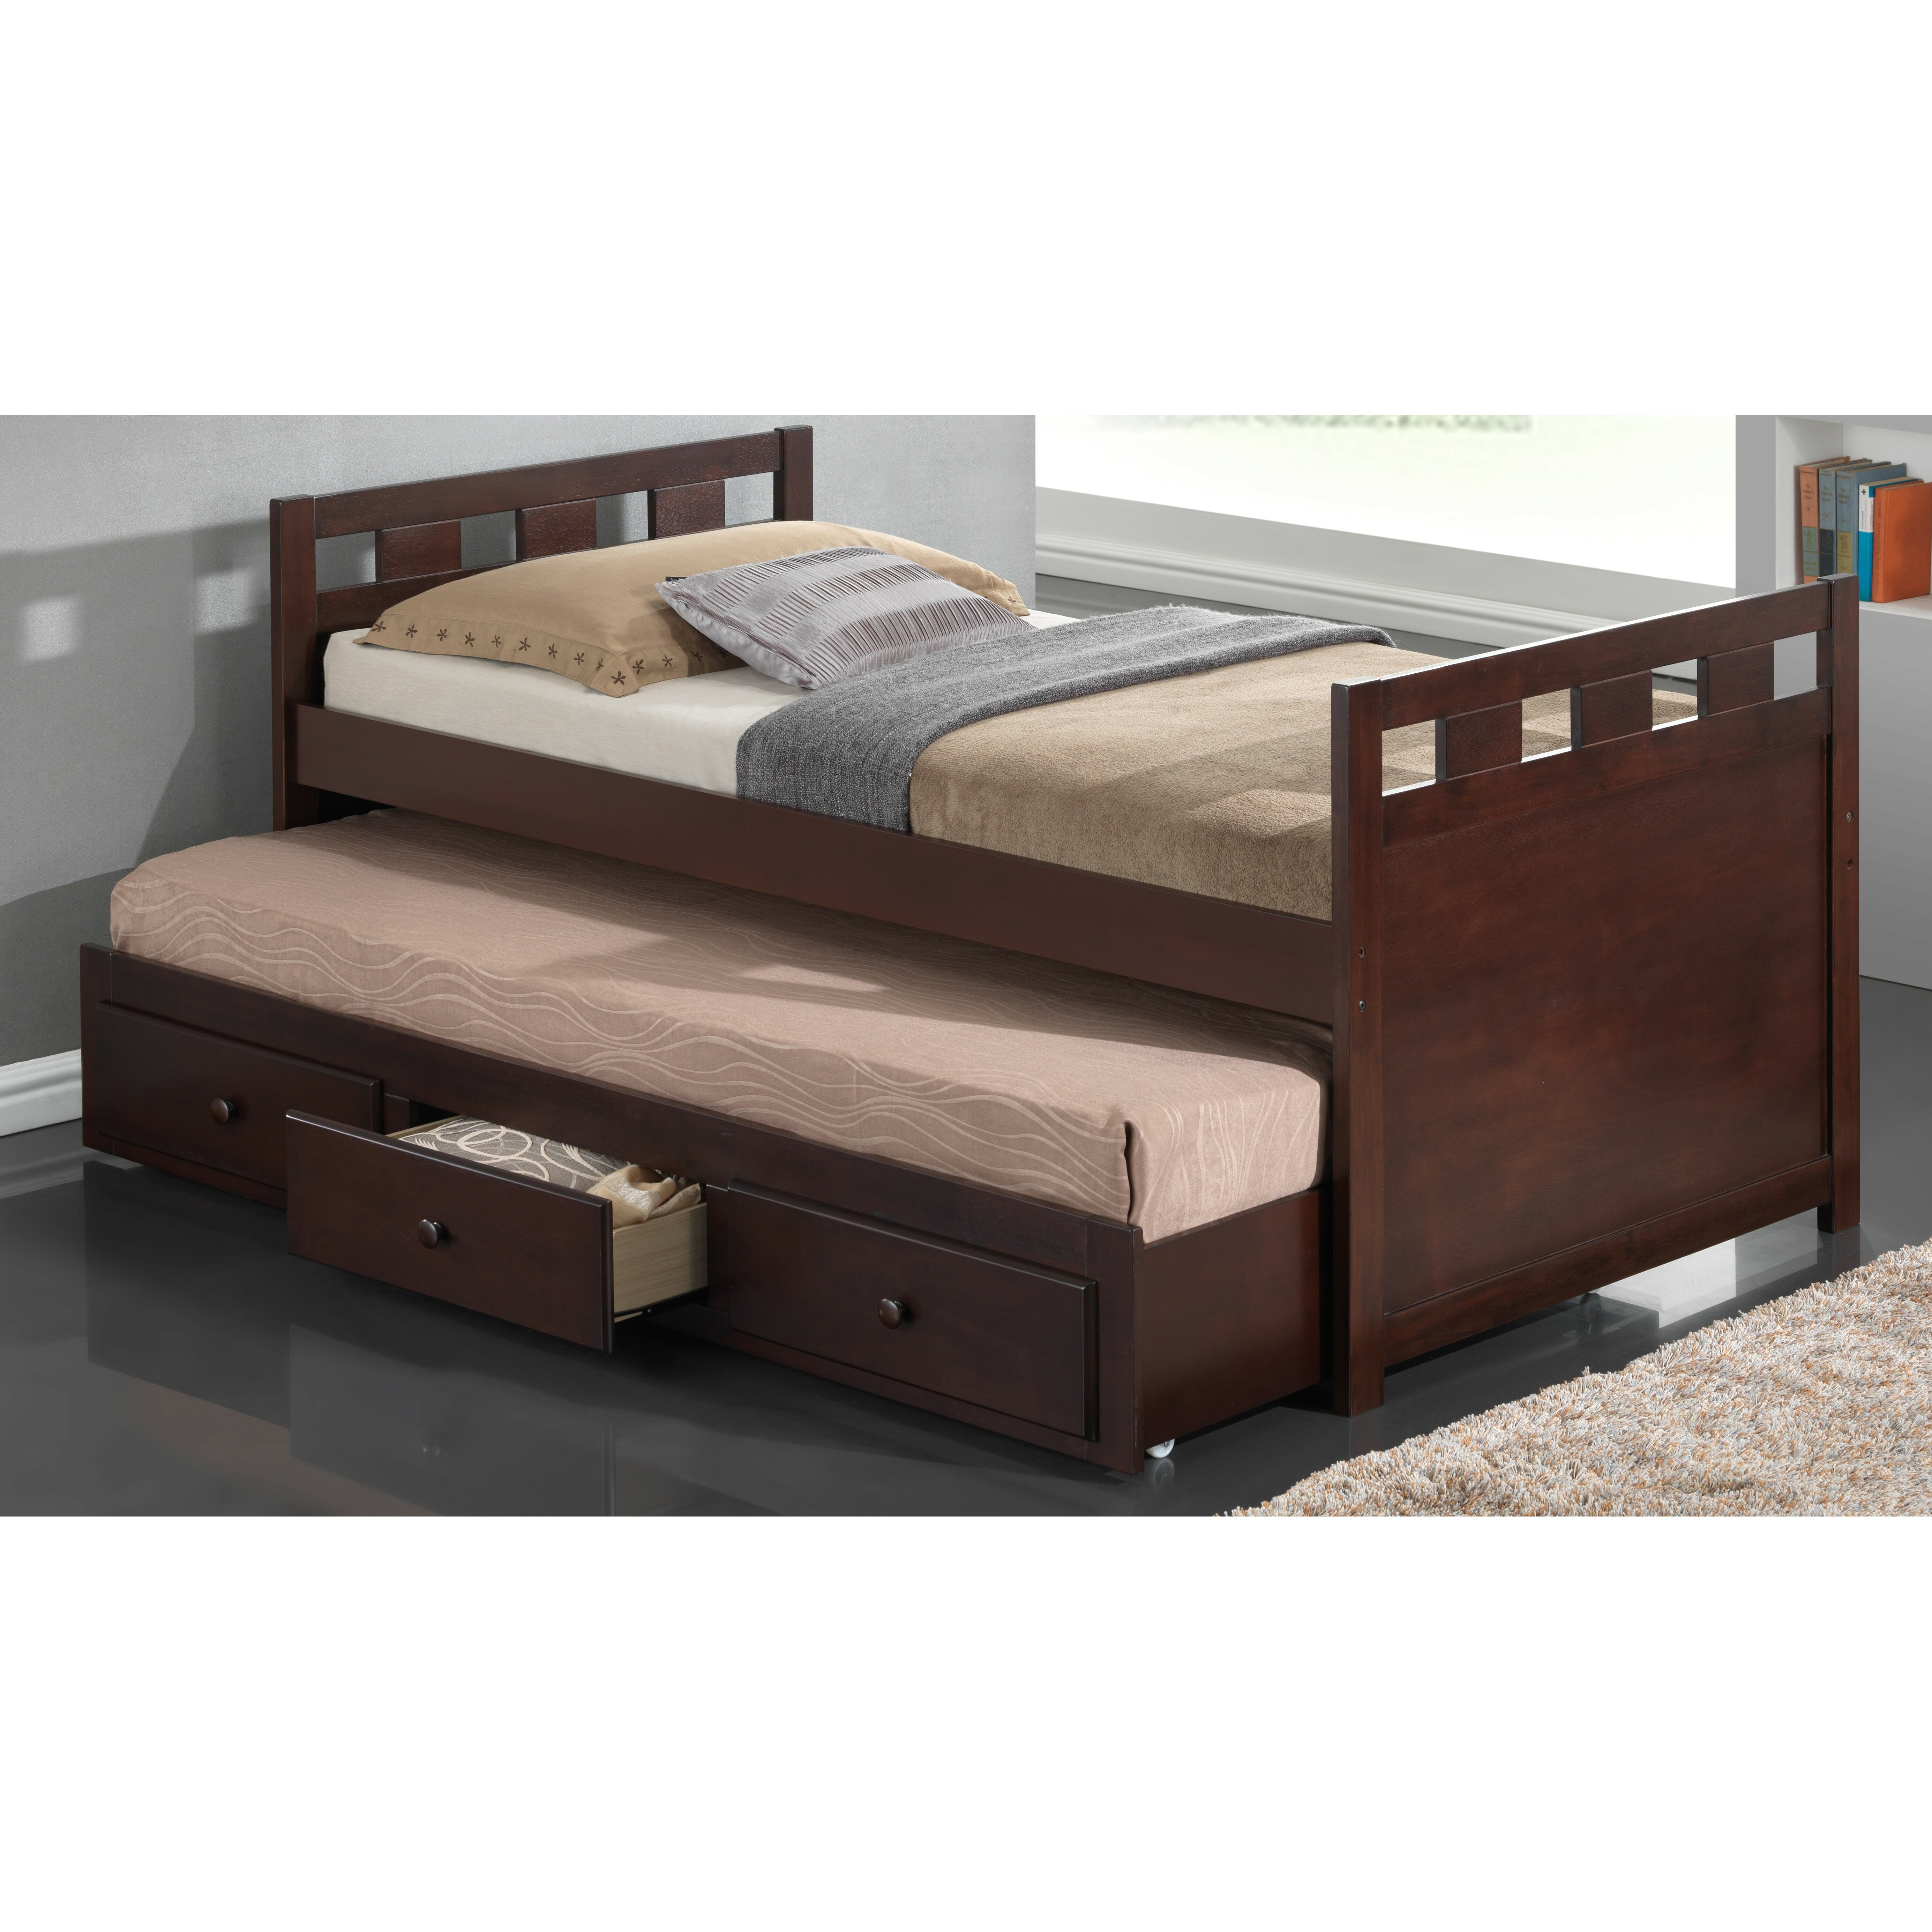 Broyhill Kids Breckenridge Twin Captain Bed With Trundle